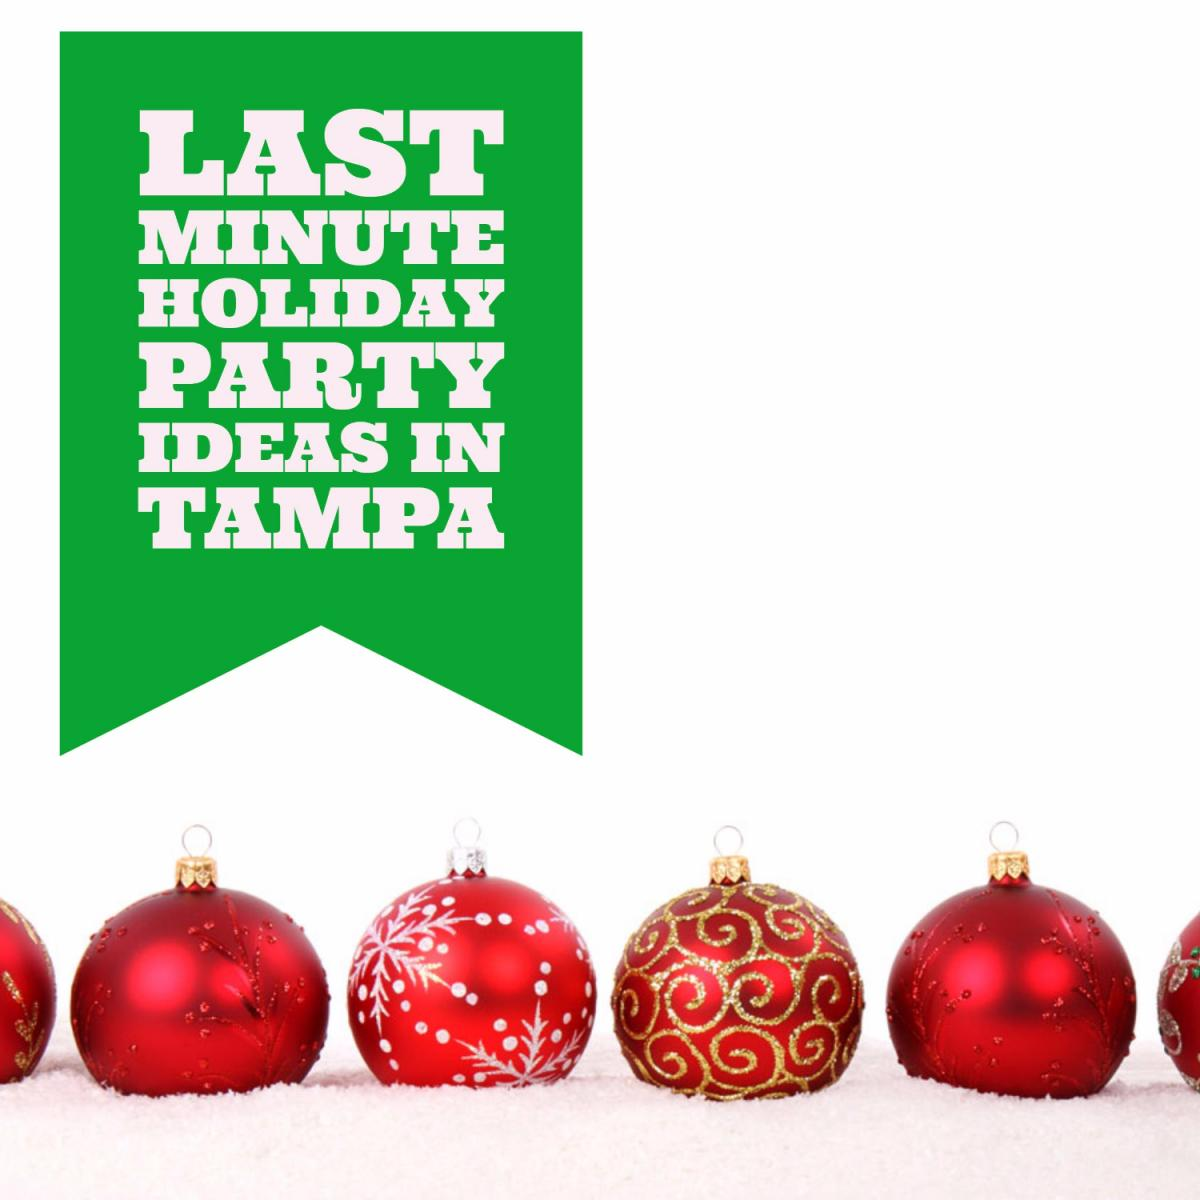 Last Minute Holiday Party Ideas in Tampa